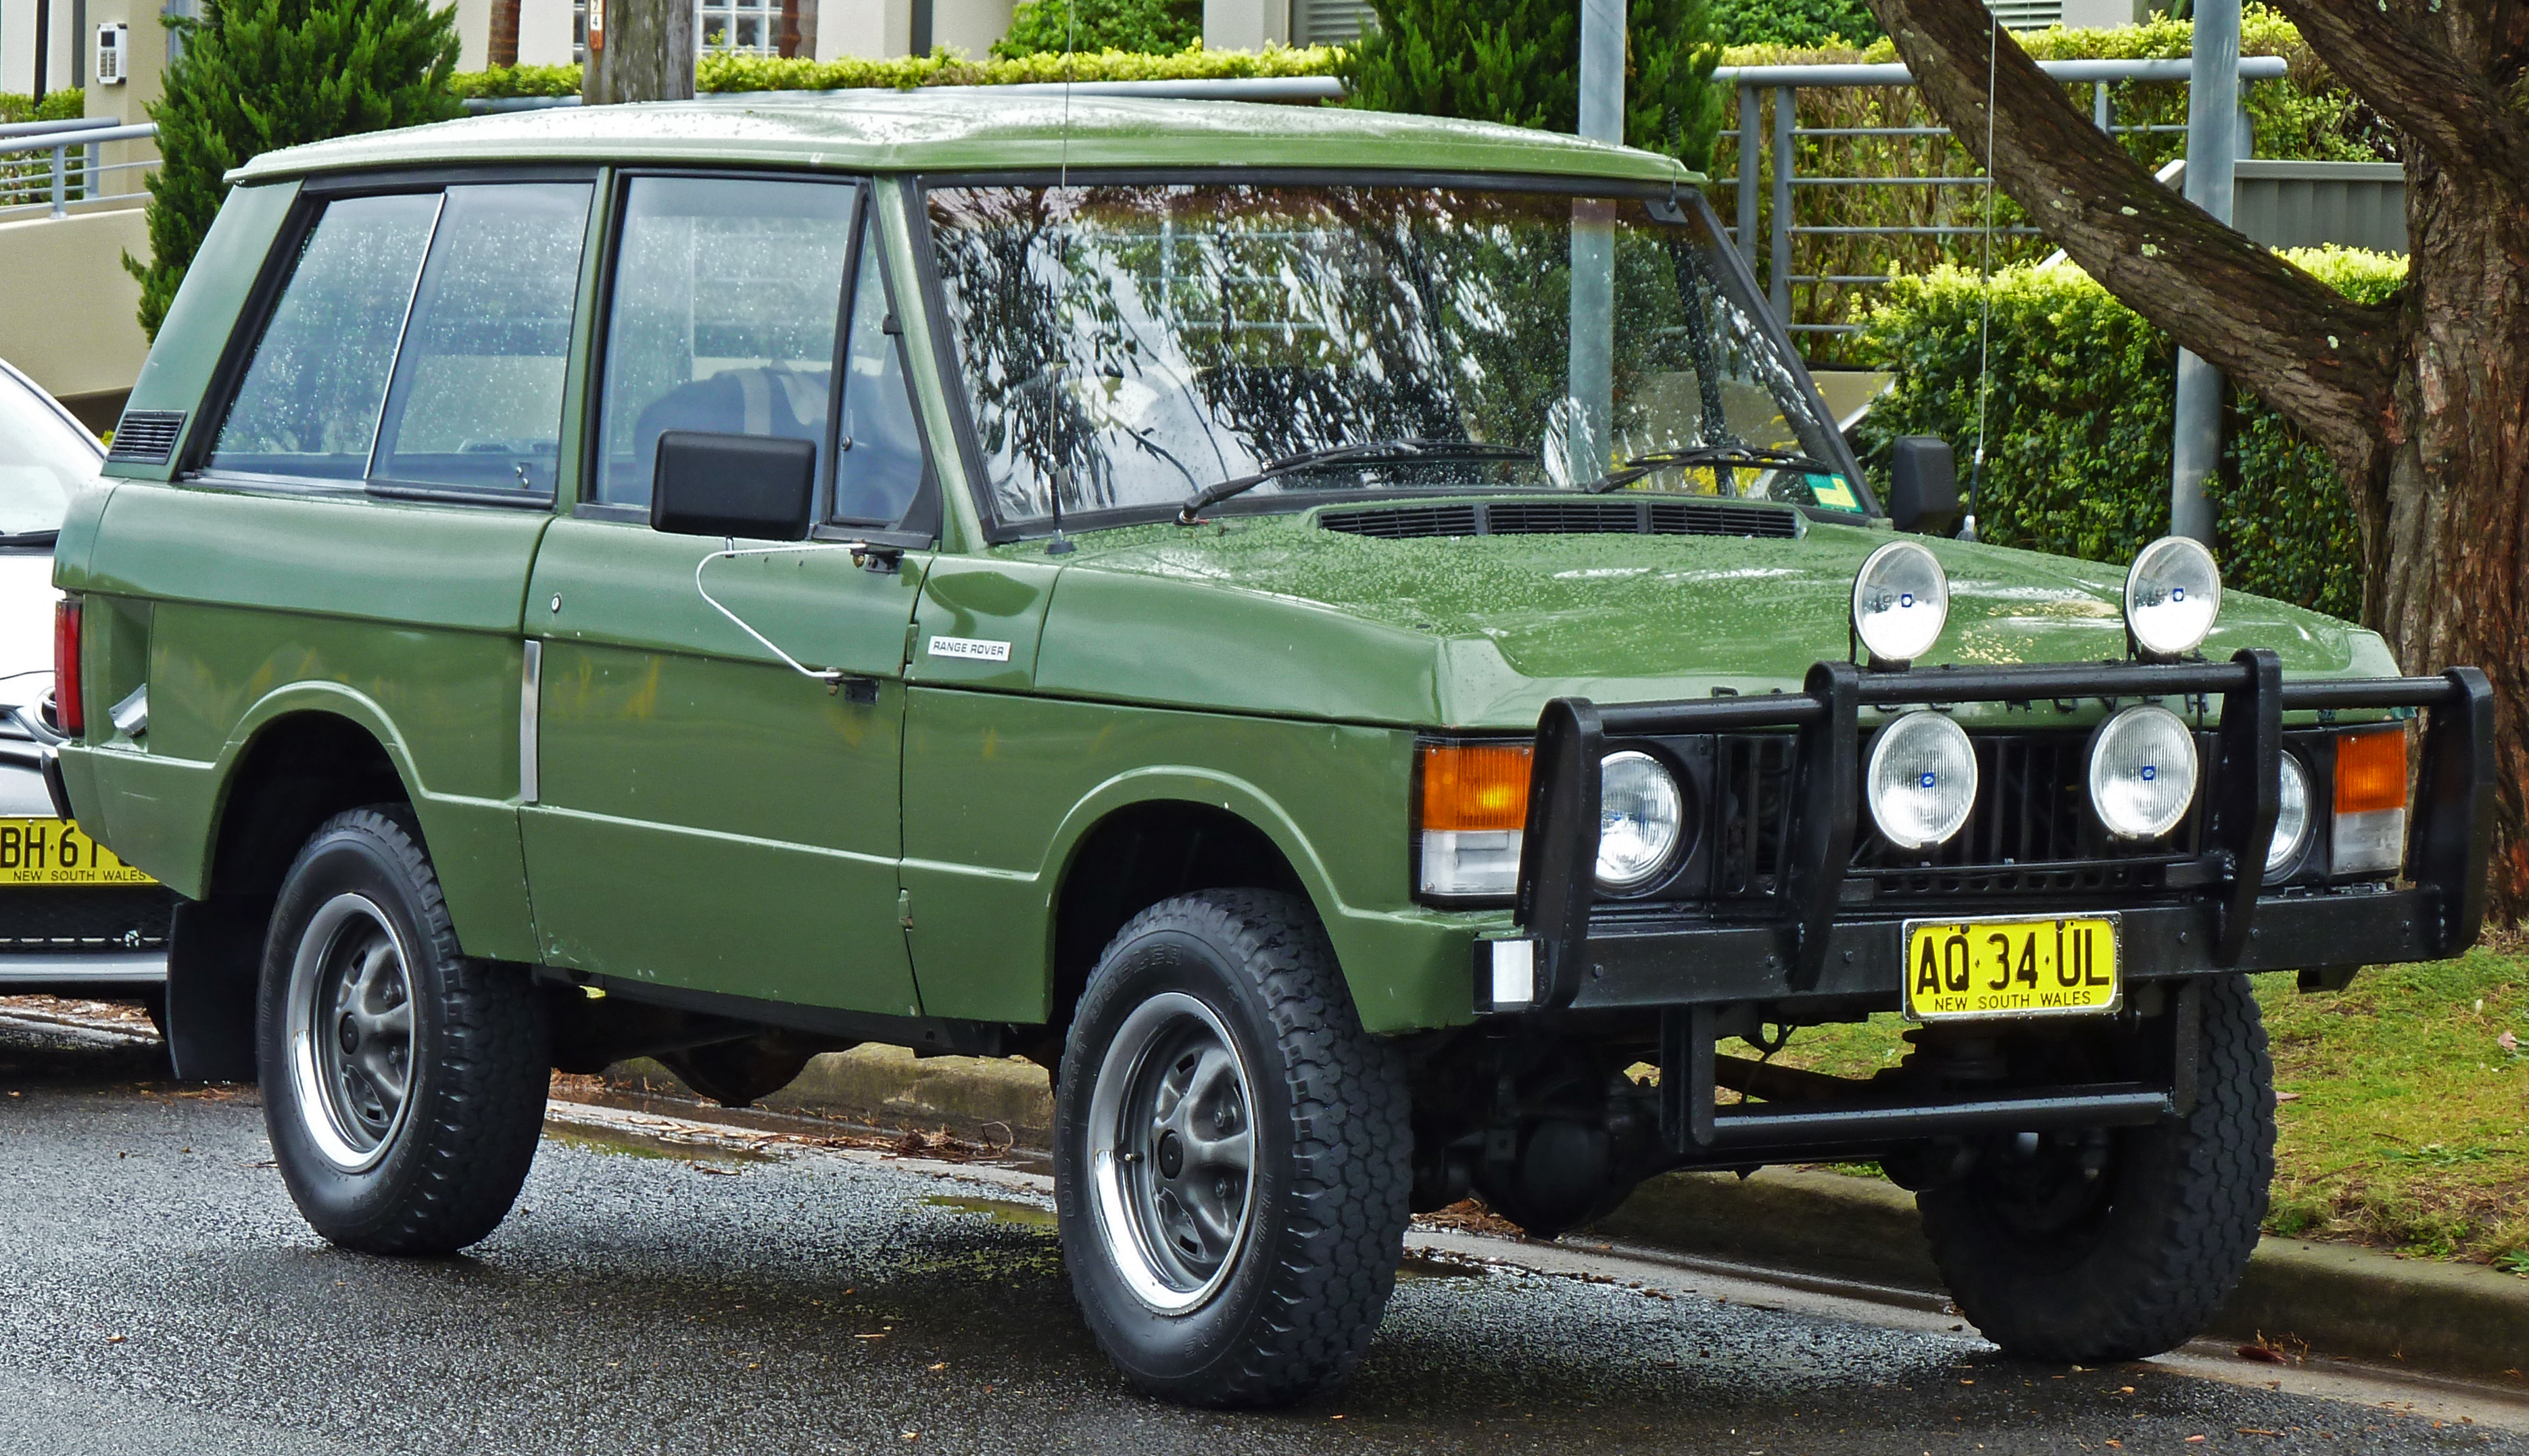 file 1972 land rover range rover 3 door wagon 2010 10 02 wikimedia commons. Black Bedroom Furniture Sets. Home Design Ideas